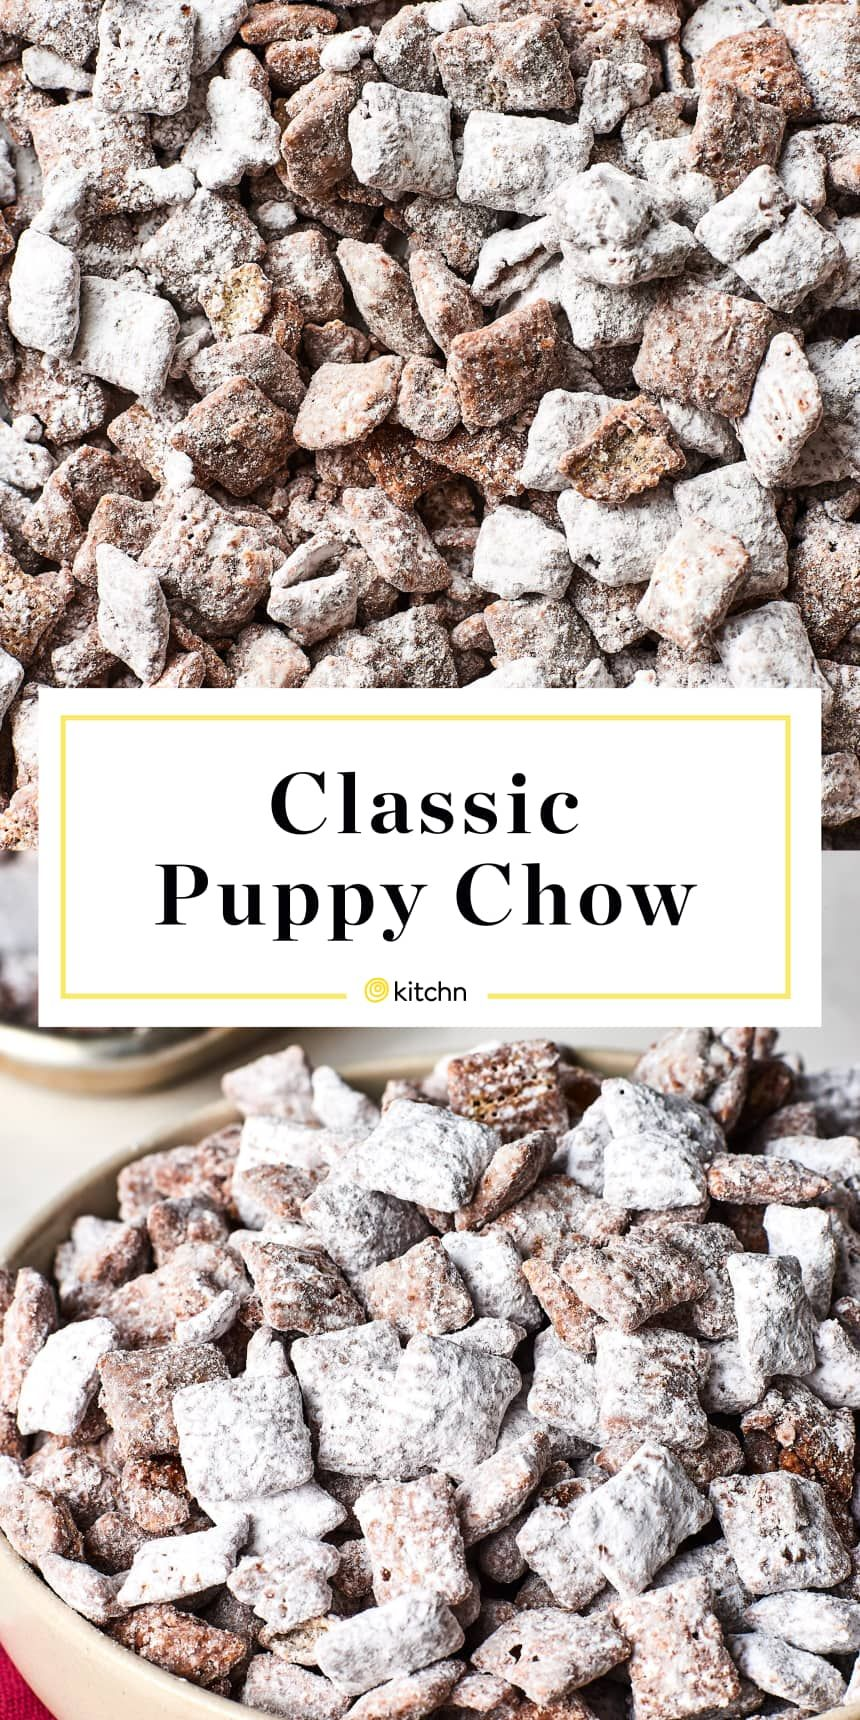 Puppy Chow Recipe Snack Mix Recipes Puppy Chow Recipes Food